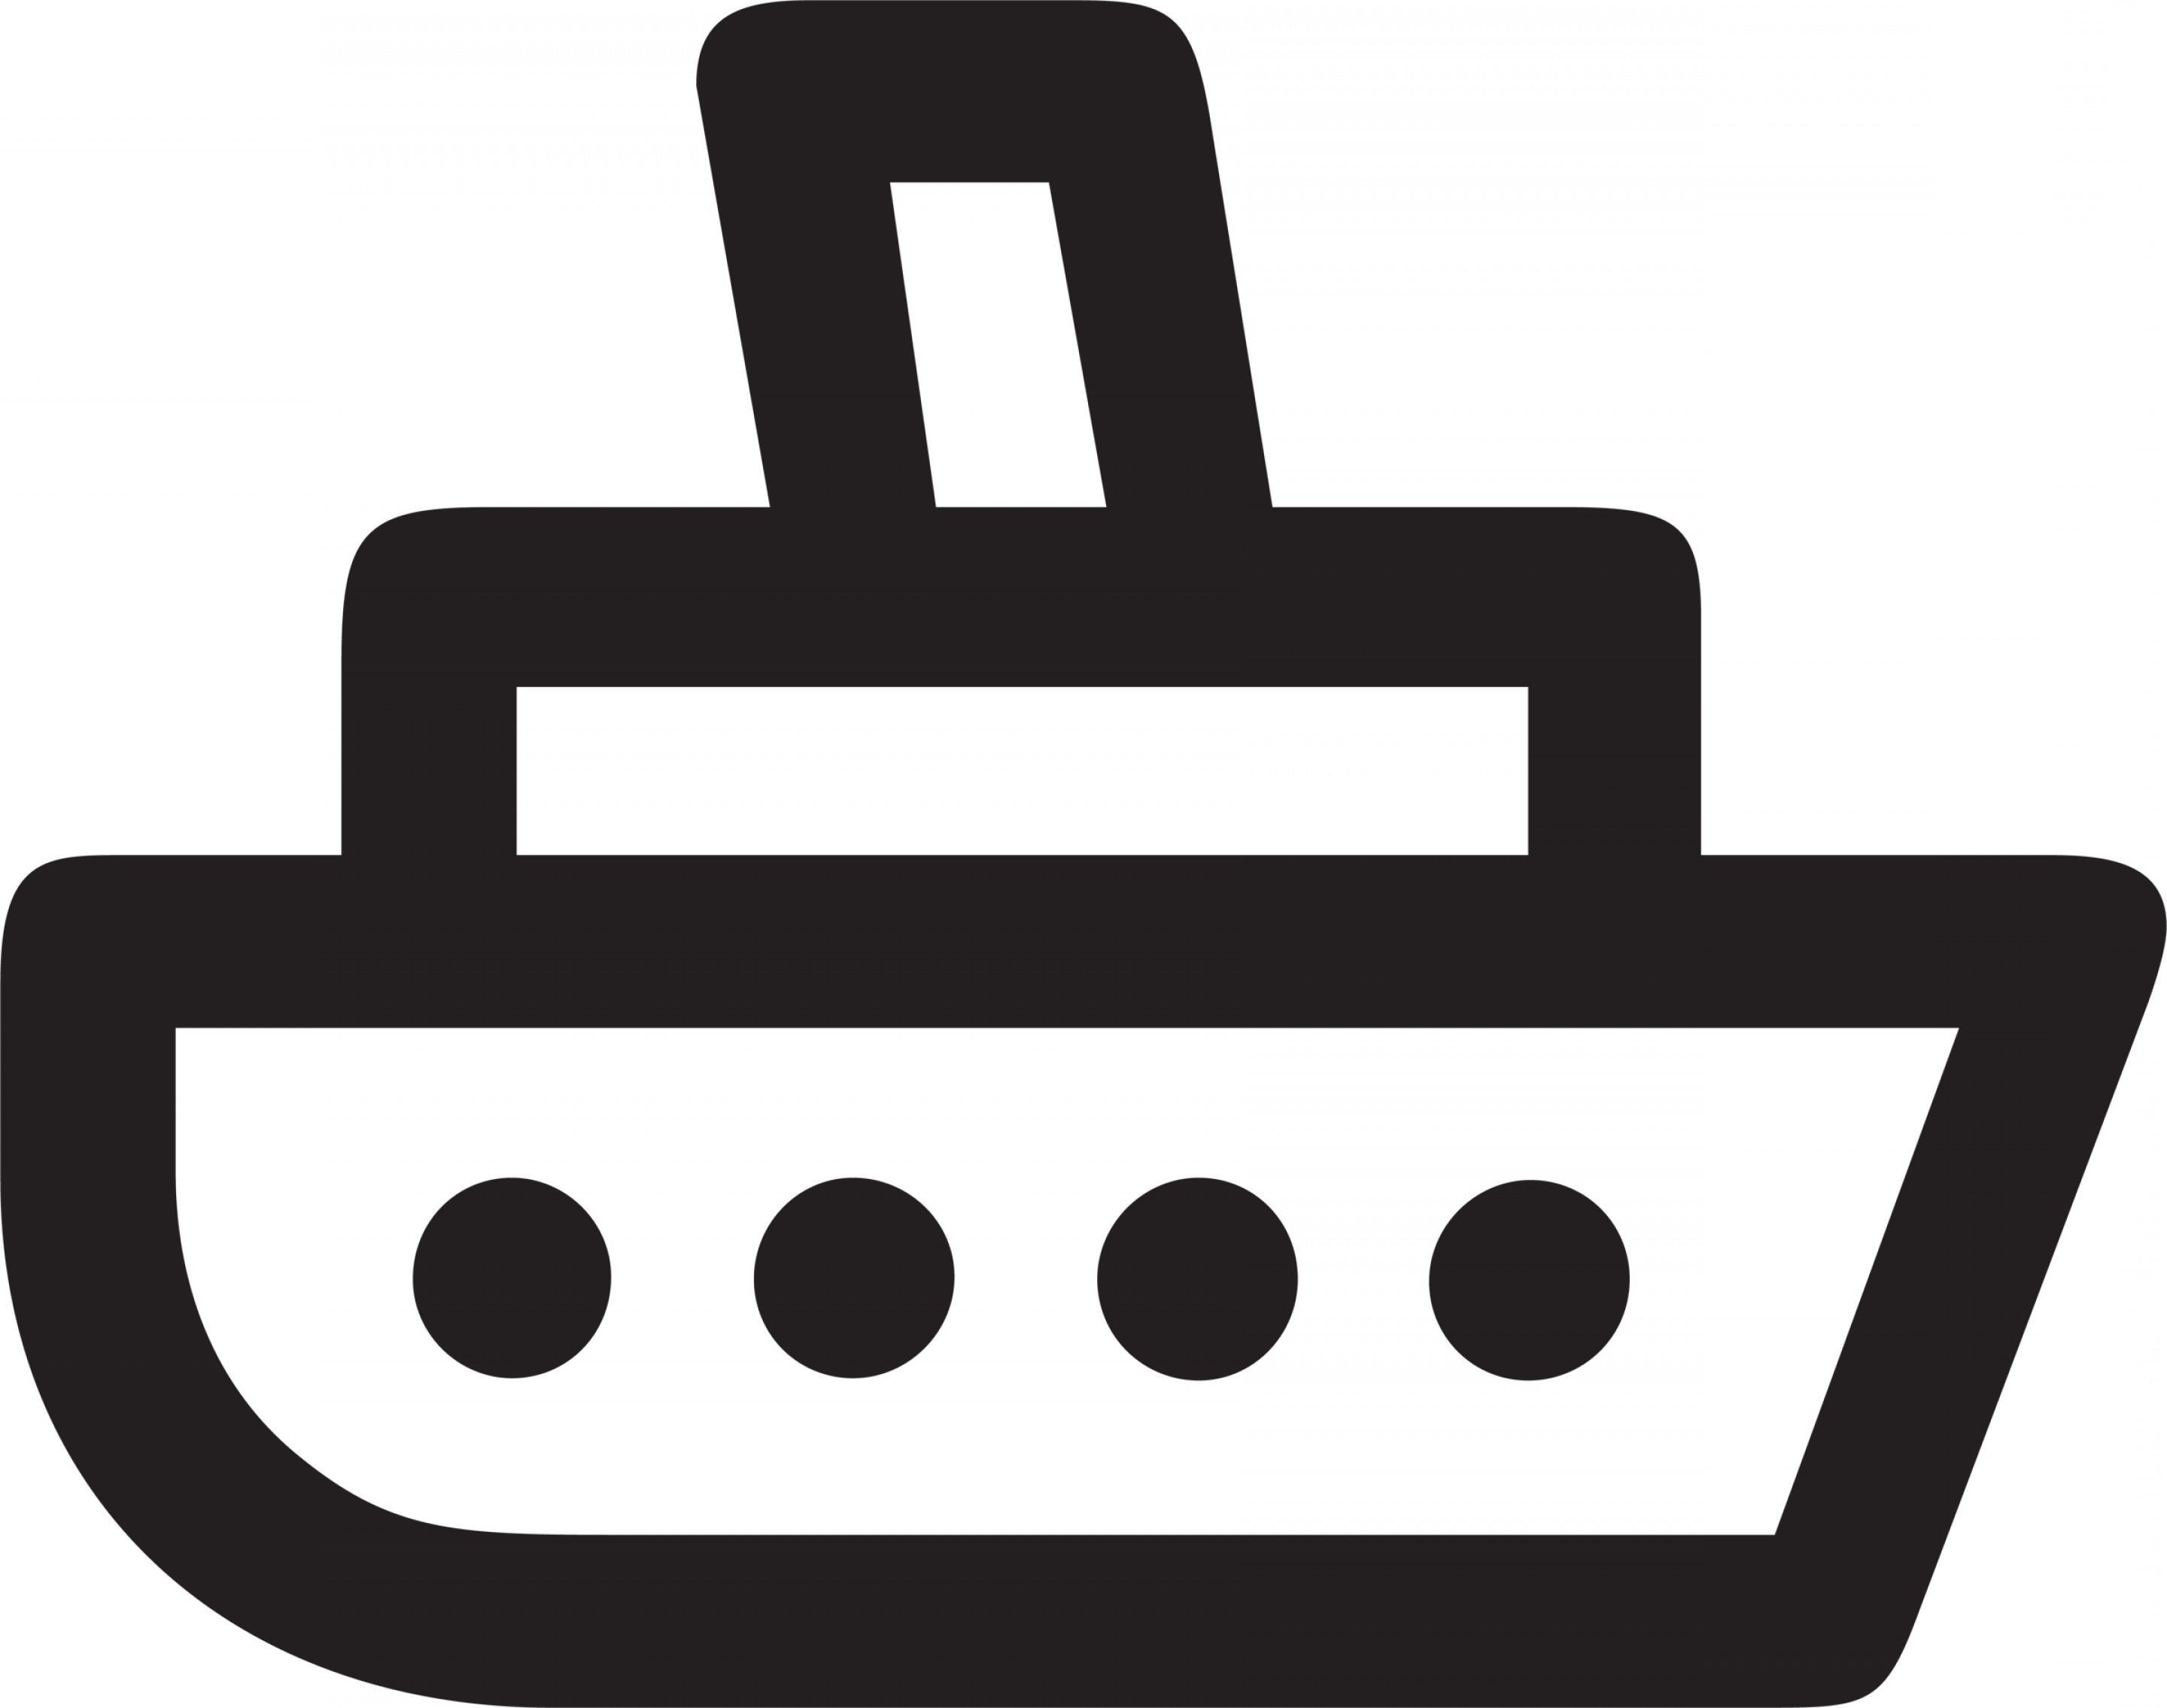 Exclusive Black And White Vector Art Cruise Ship Draw.